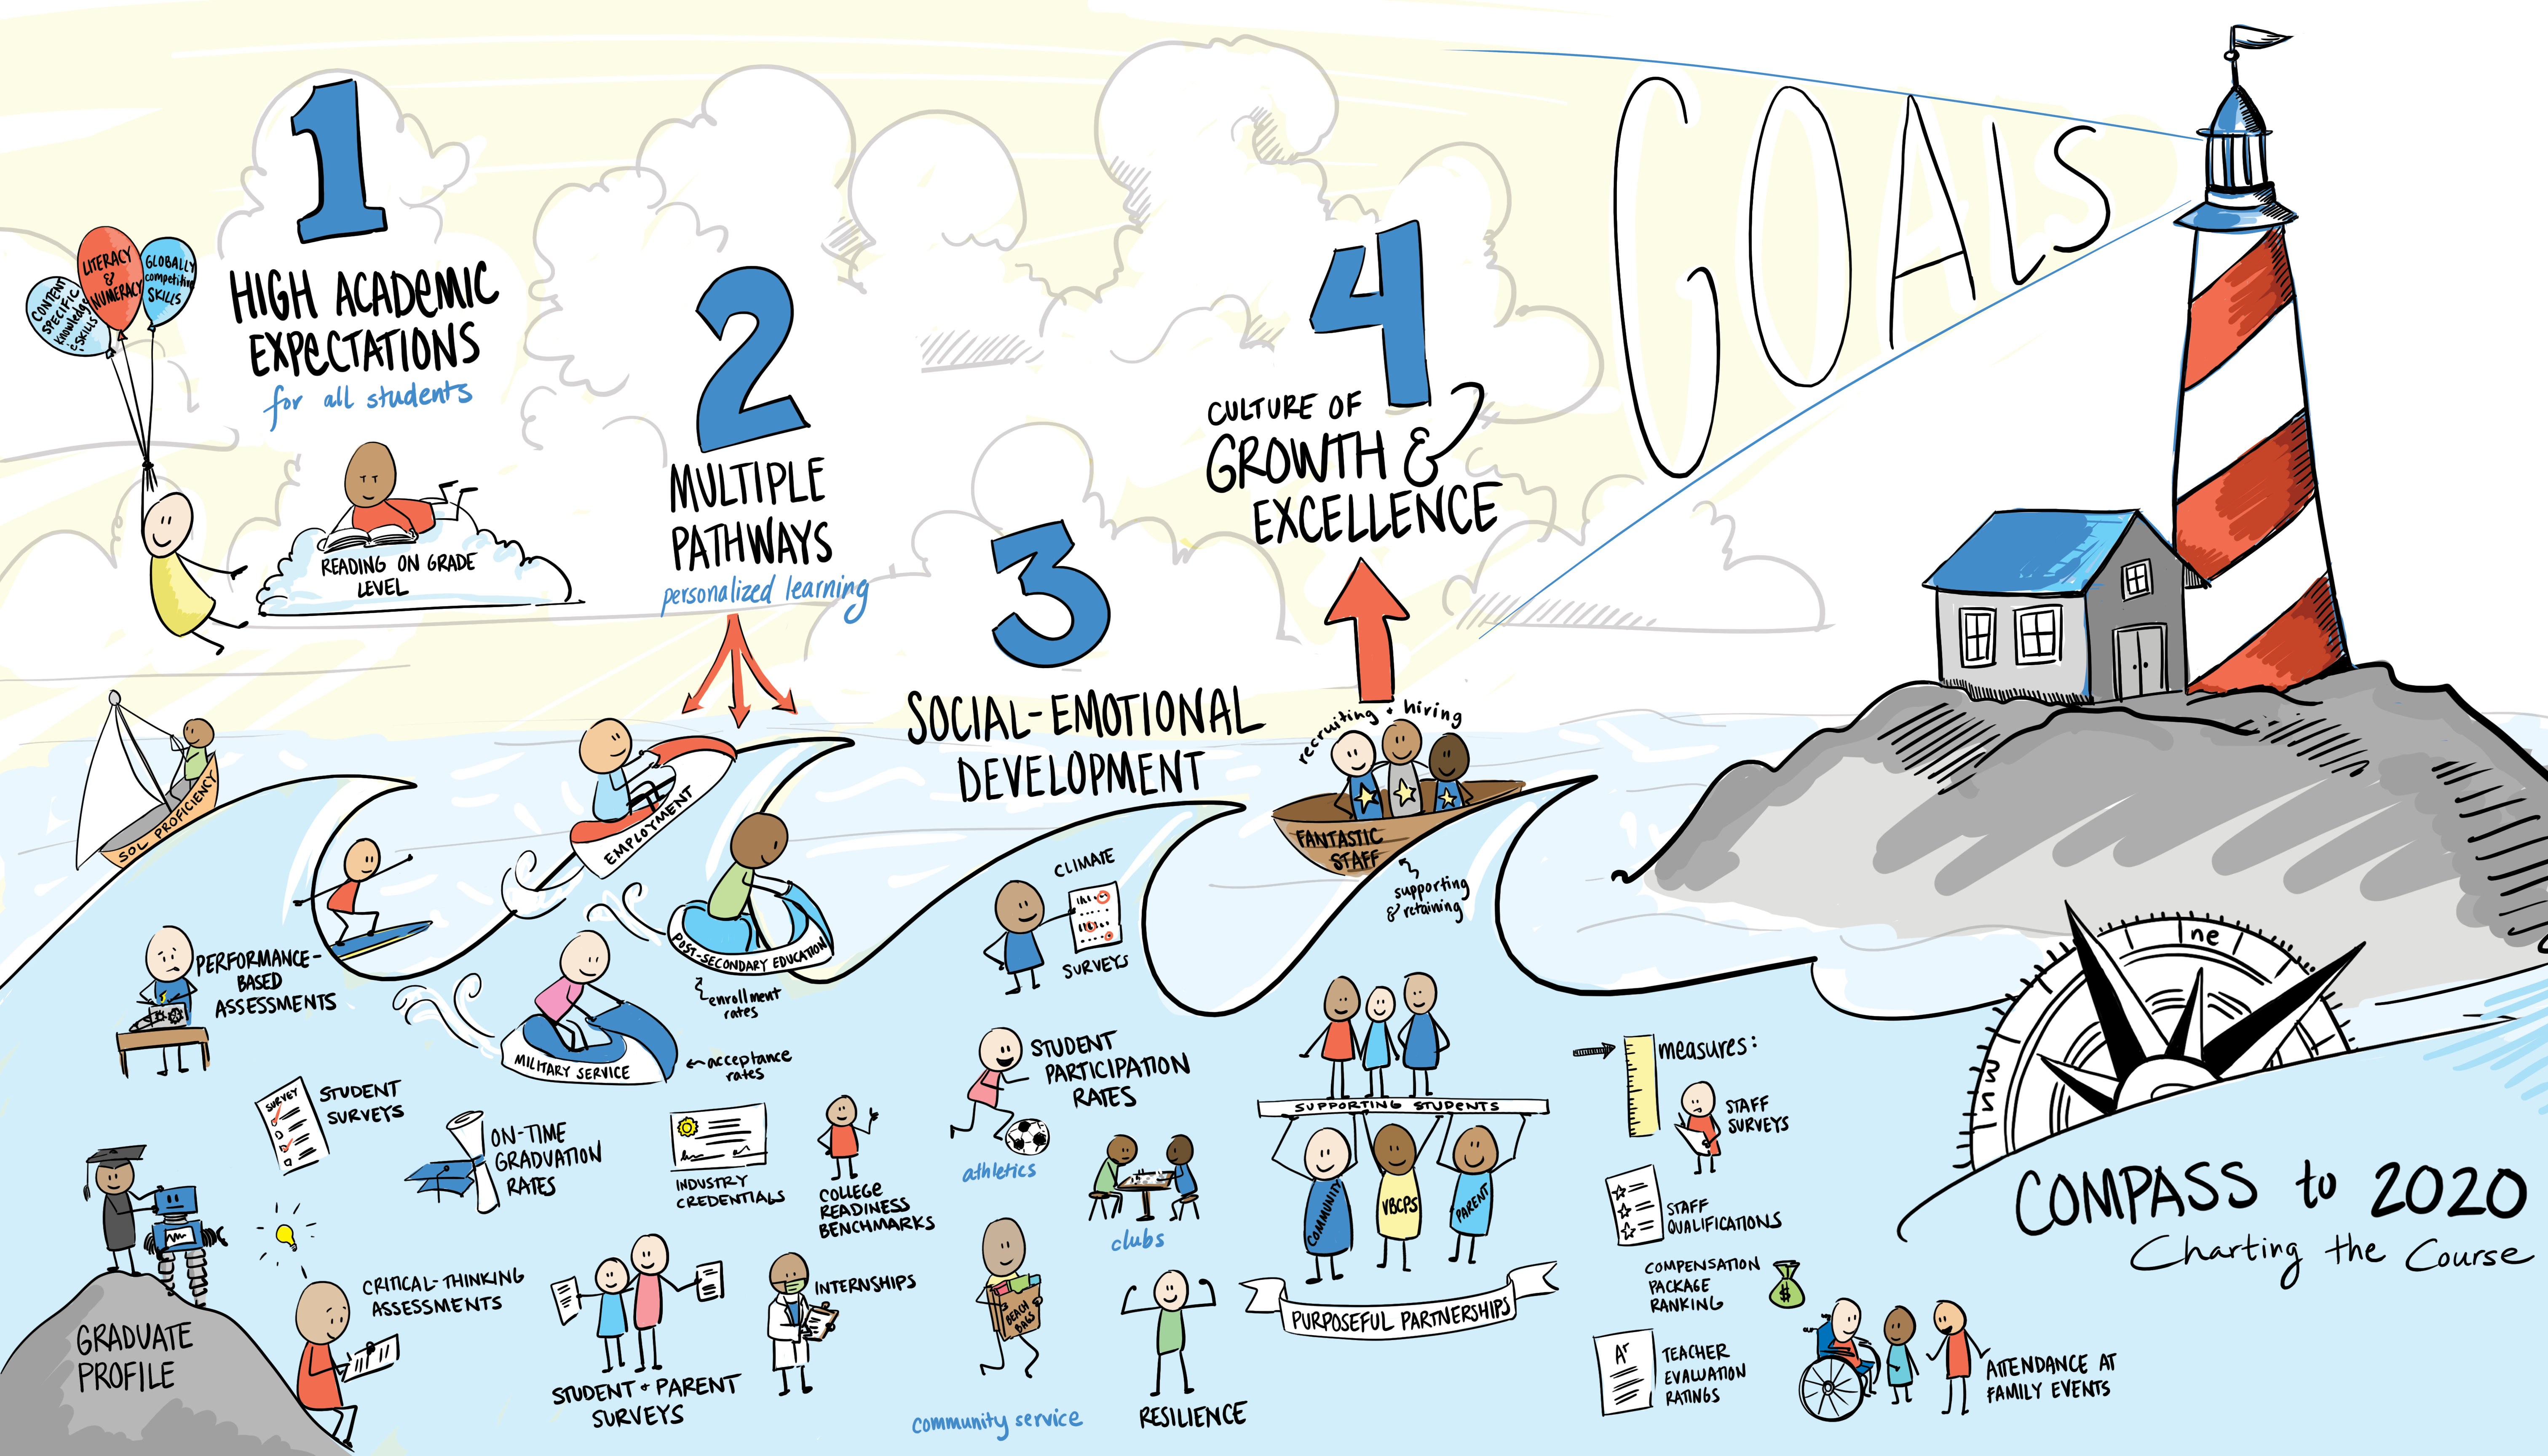 Compass to 2020 Storyboard, 4 Goals: High Academic Expectations for all students, Multiple Pathways, Social-Emotional Development, and Culture of Growth and Excellence